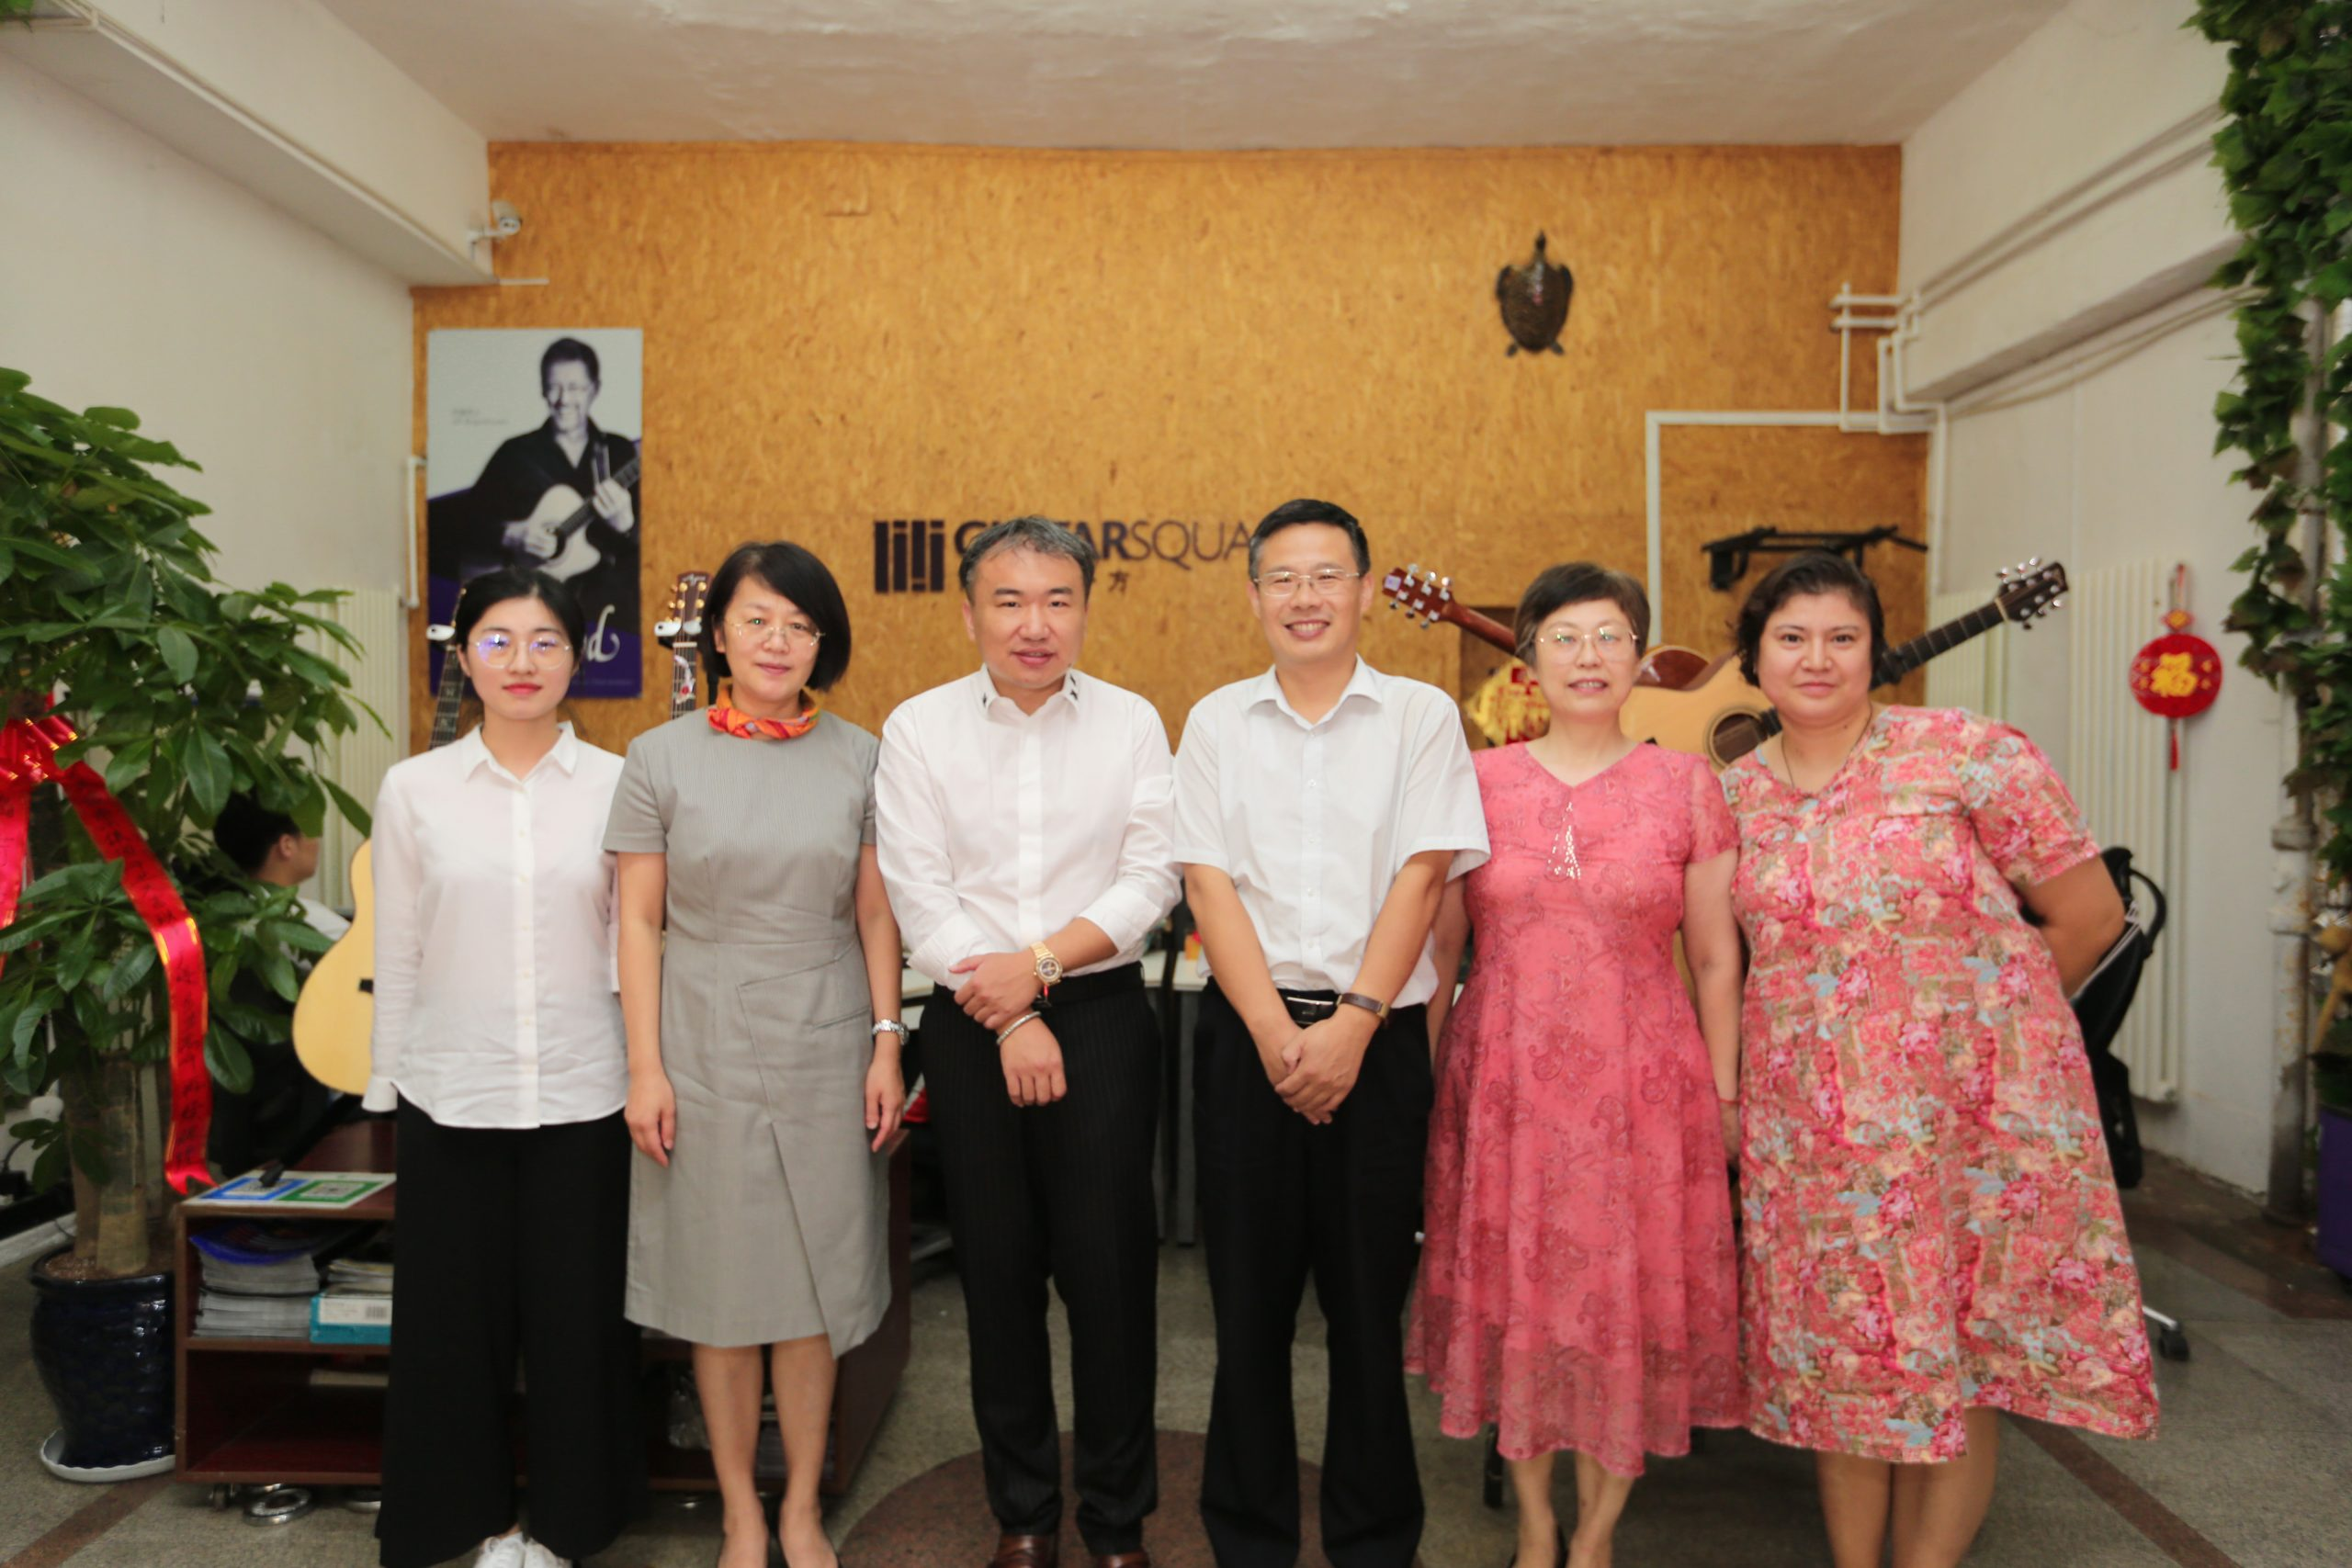 Tong Yu, Deputy Director of North District Government, Visited Marvel Music Group Accompanied by Others